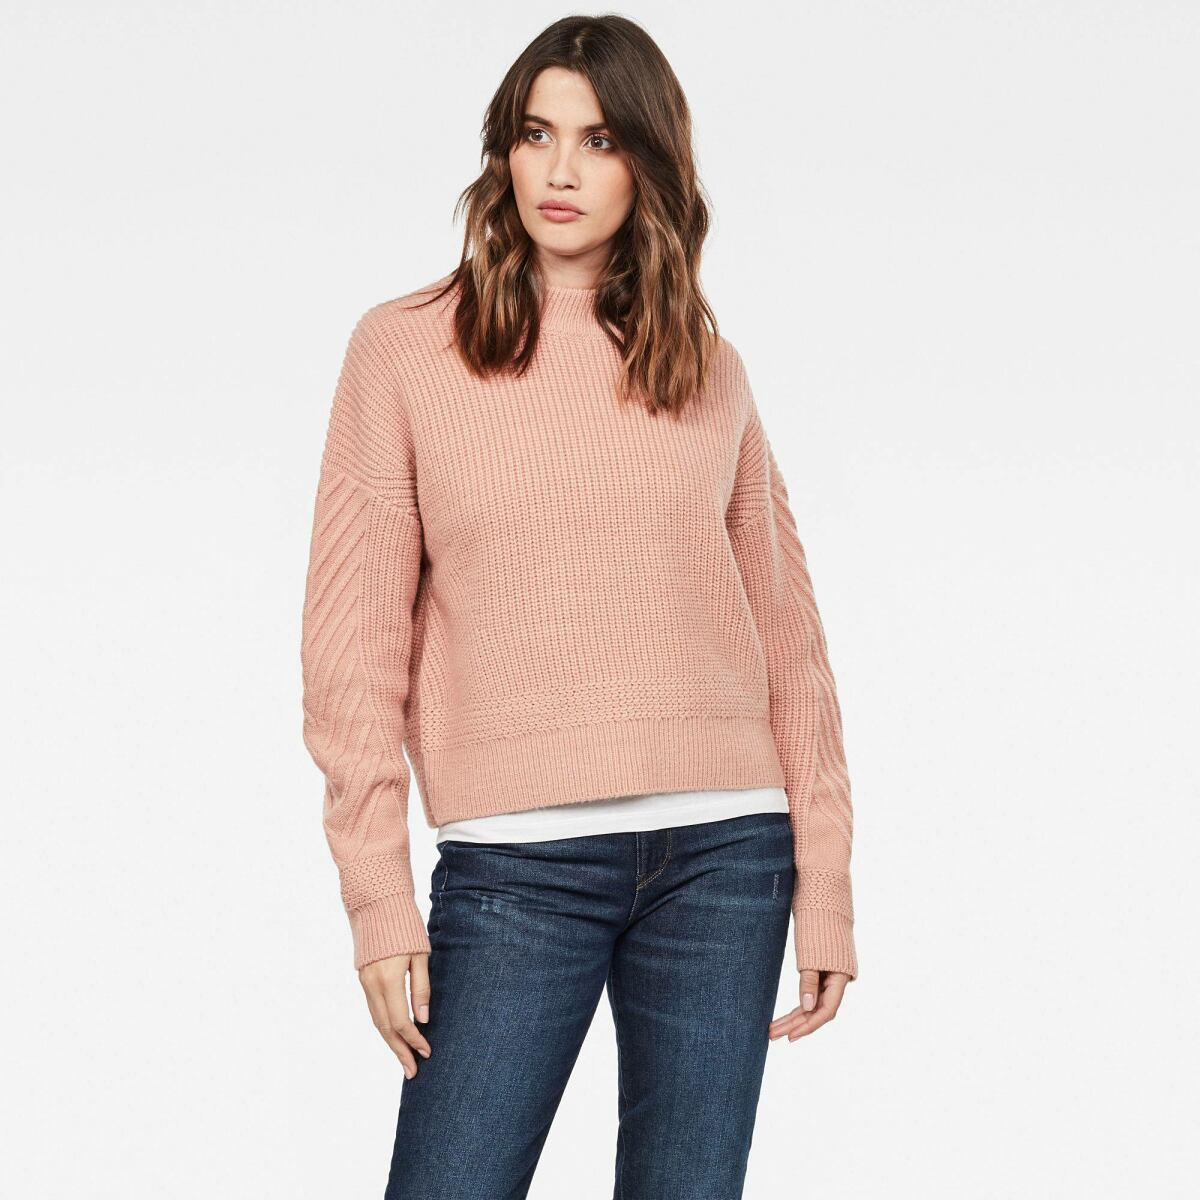 Pink Woman Knitwear Weet Turtleneck Knitted Sweater G-Star WOMEN